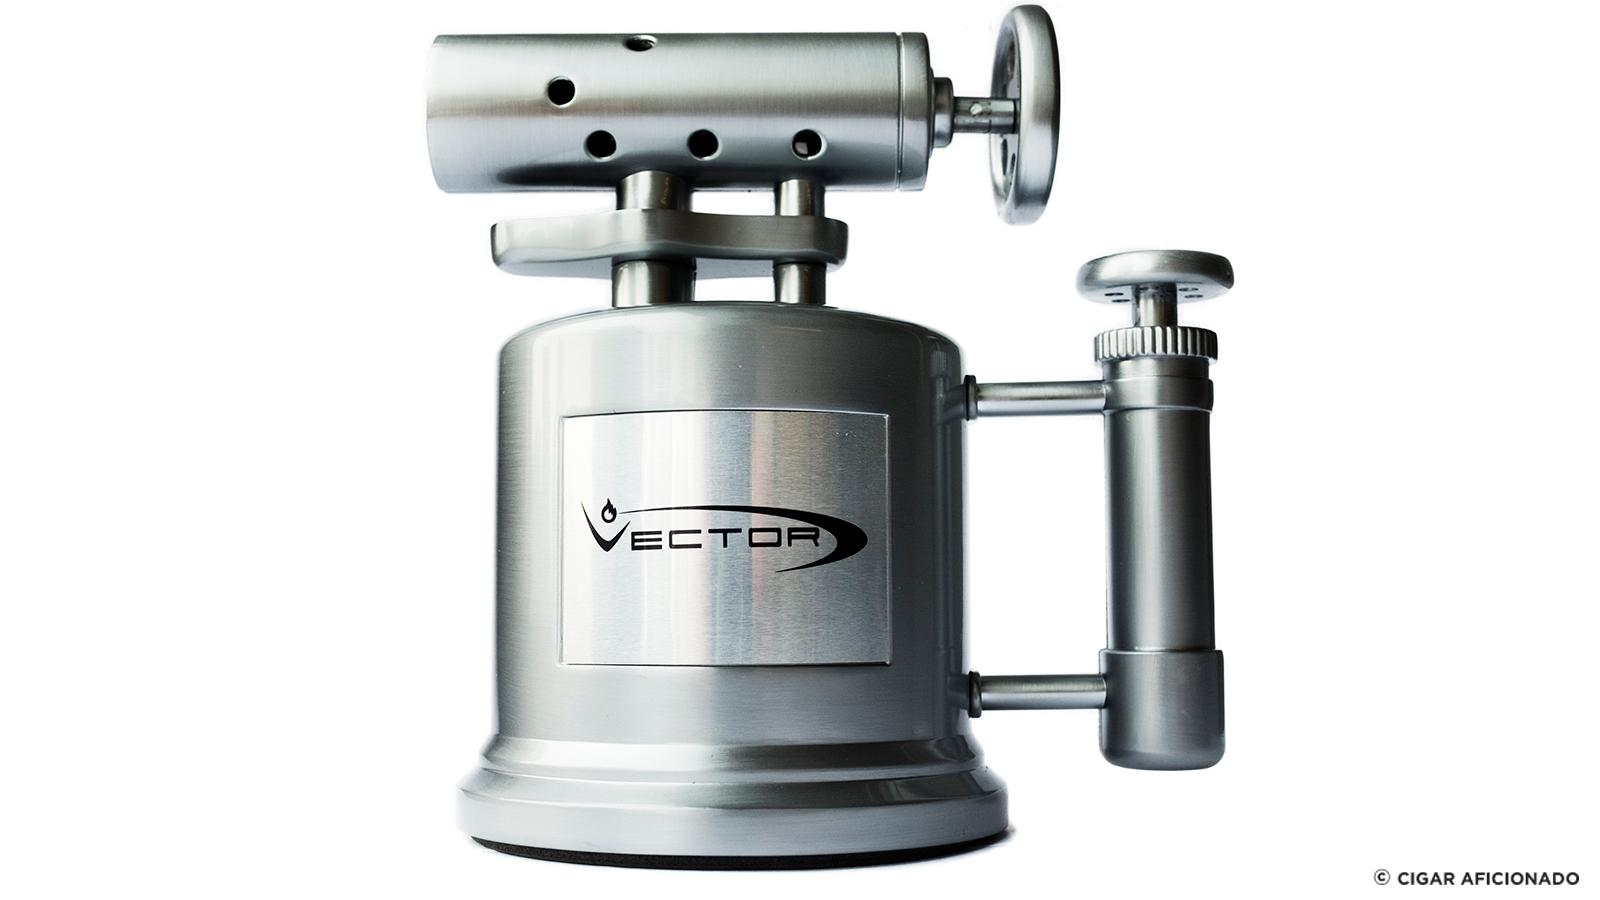 Review: Vector Tri-Pump Tabletop Lighter